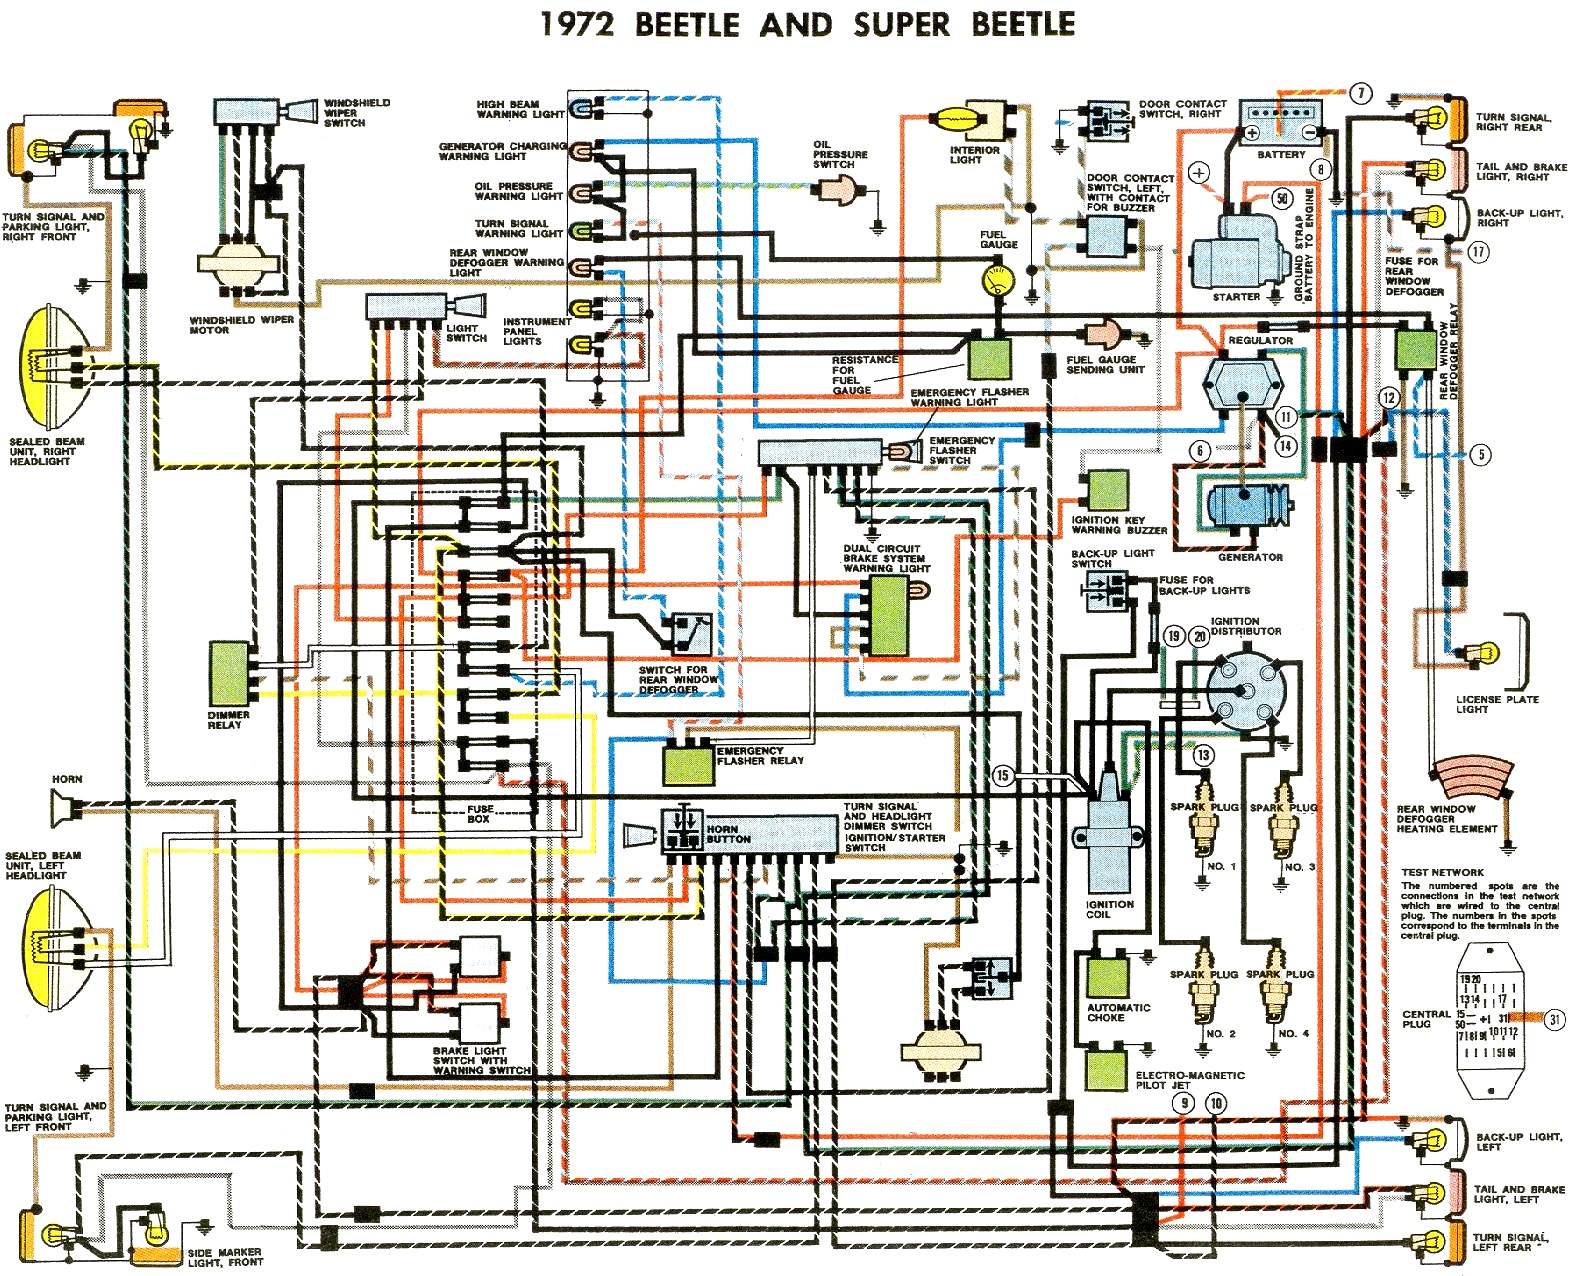 bug_72 1972 beetle wiring diagram thegoldenbug com 1973 vw wiring diagram at reclaimingppi.co